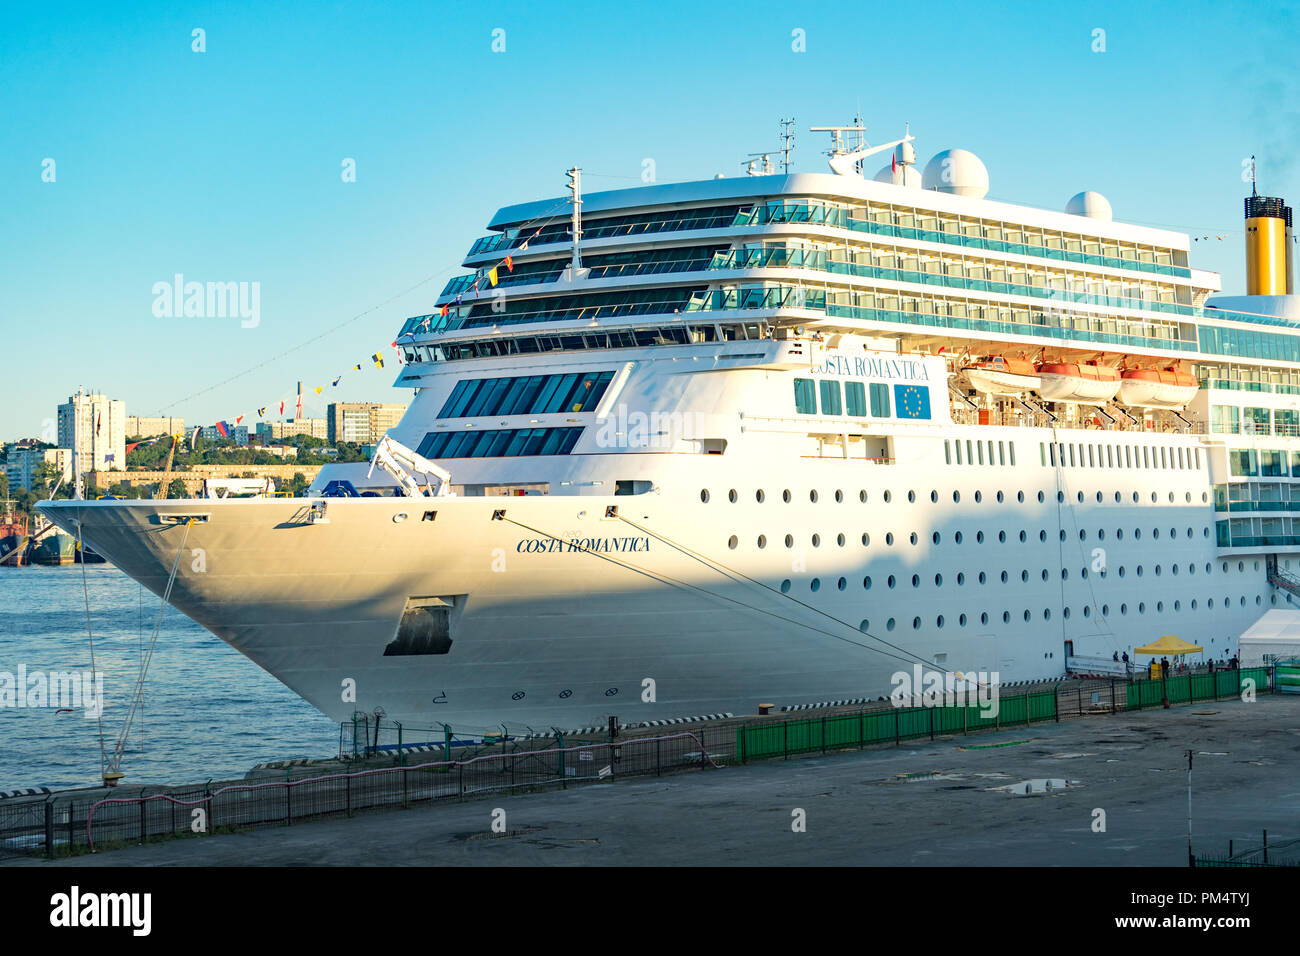 Vladivostok Russia September 9 2018 Cruise Ship Costa Neoromantica For The Background Of The Sea In The Evening Stock Photo Alamy